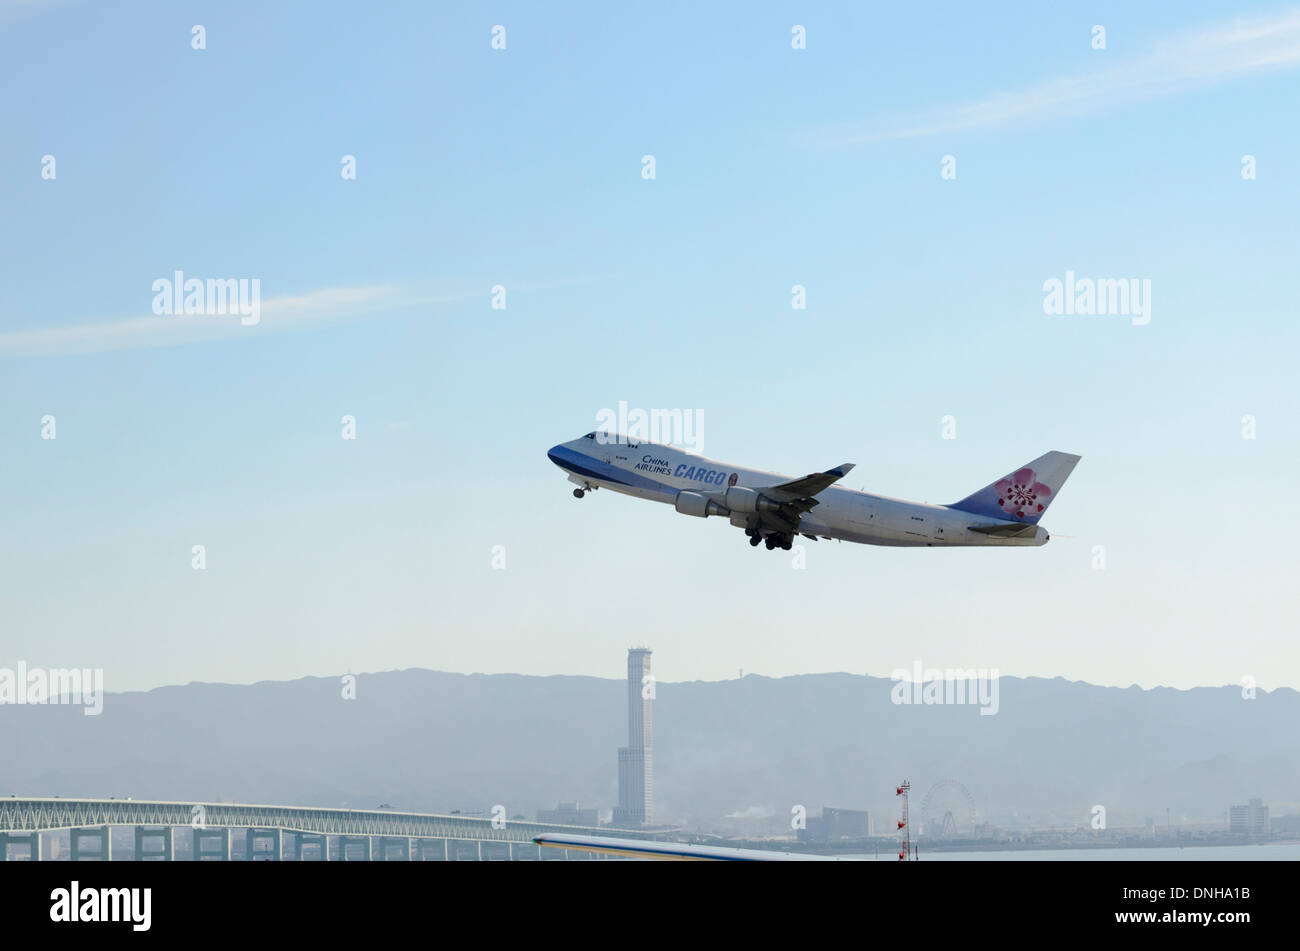 Old Jumbo Jet (Boeing 747) operating as a freighter, taking off from an airport Stock Photo